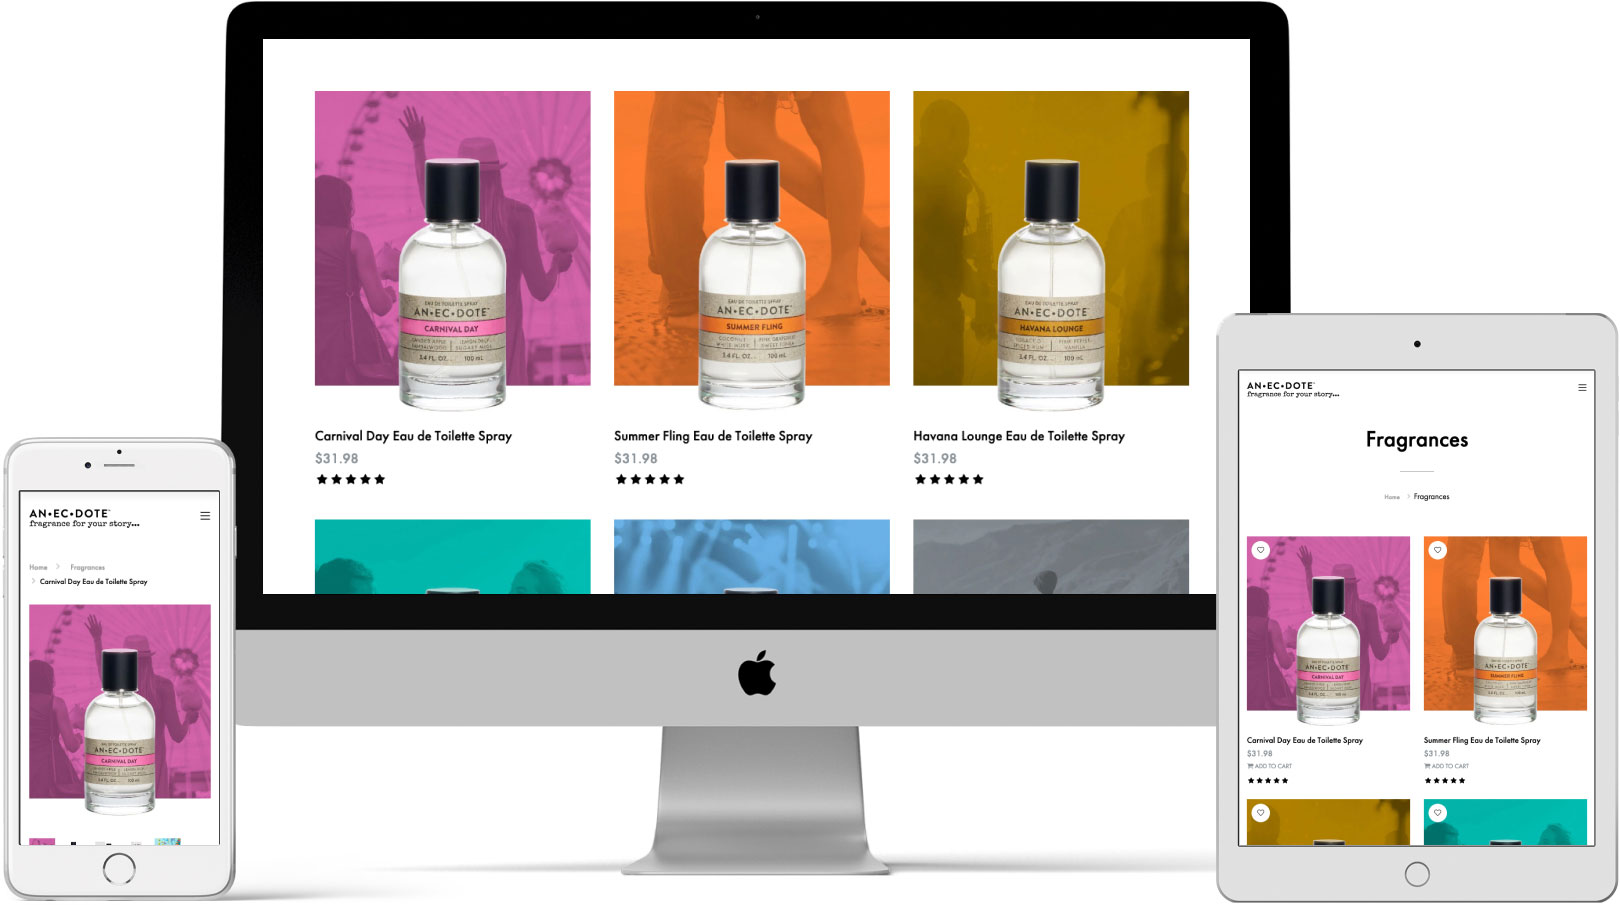 Anecdote Fragrances Website on Devices